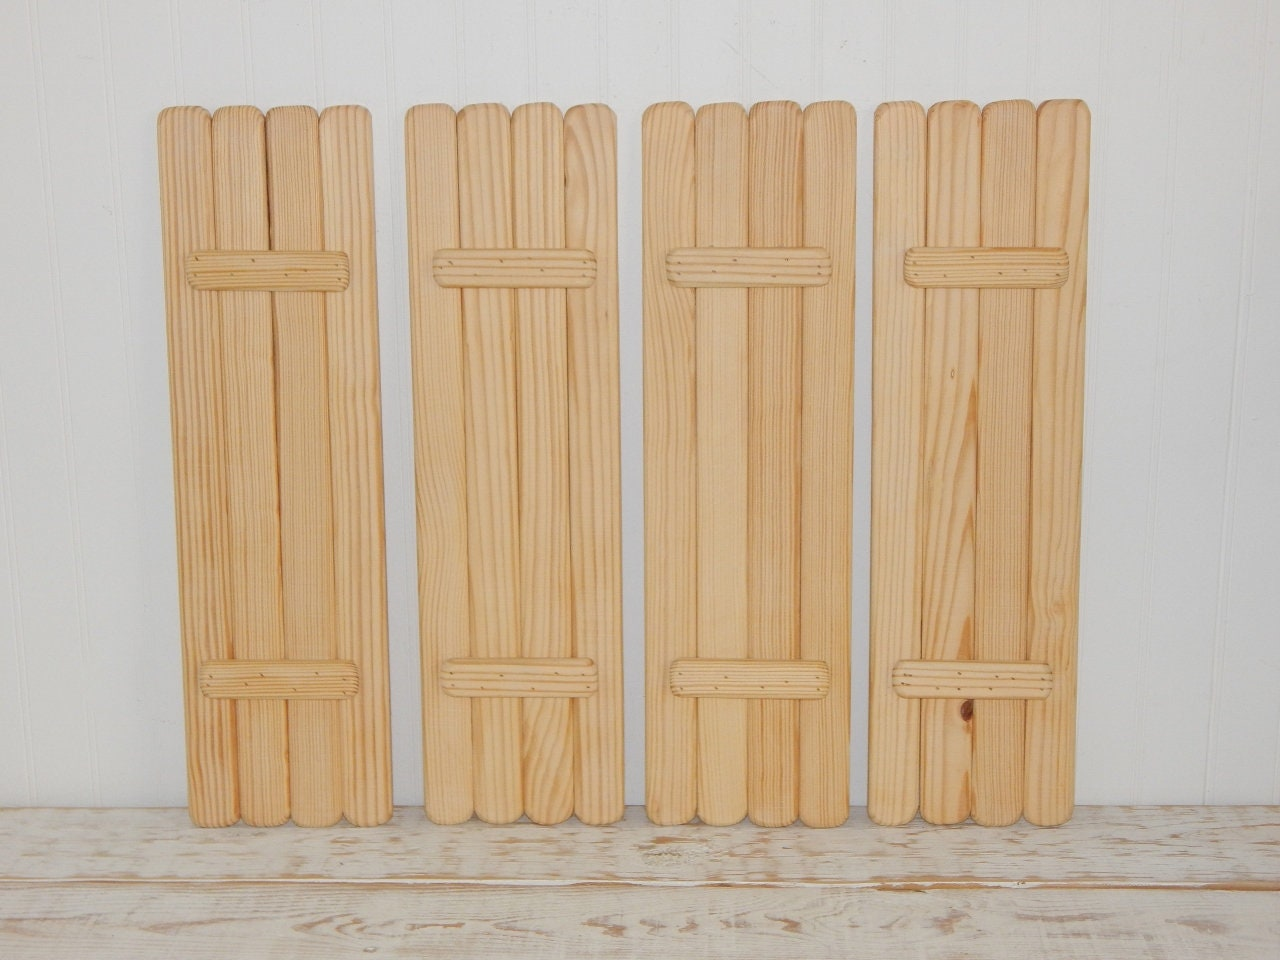 Unfinished wooden shutters set 4 panels 2 pairs interior - Unfinished wood shutters interior ...